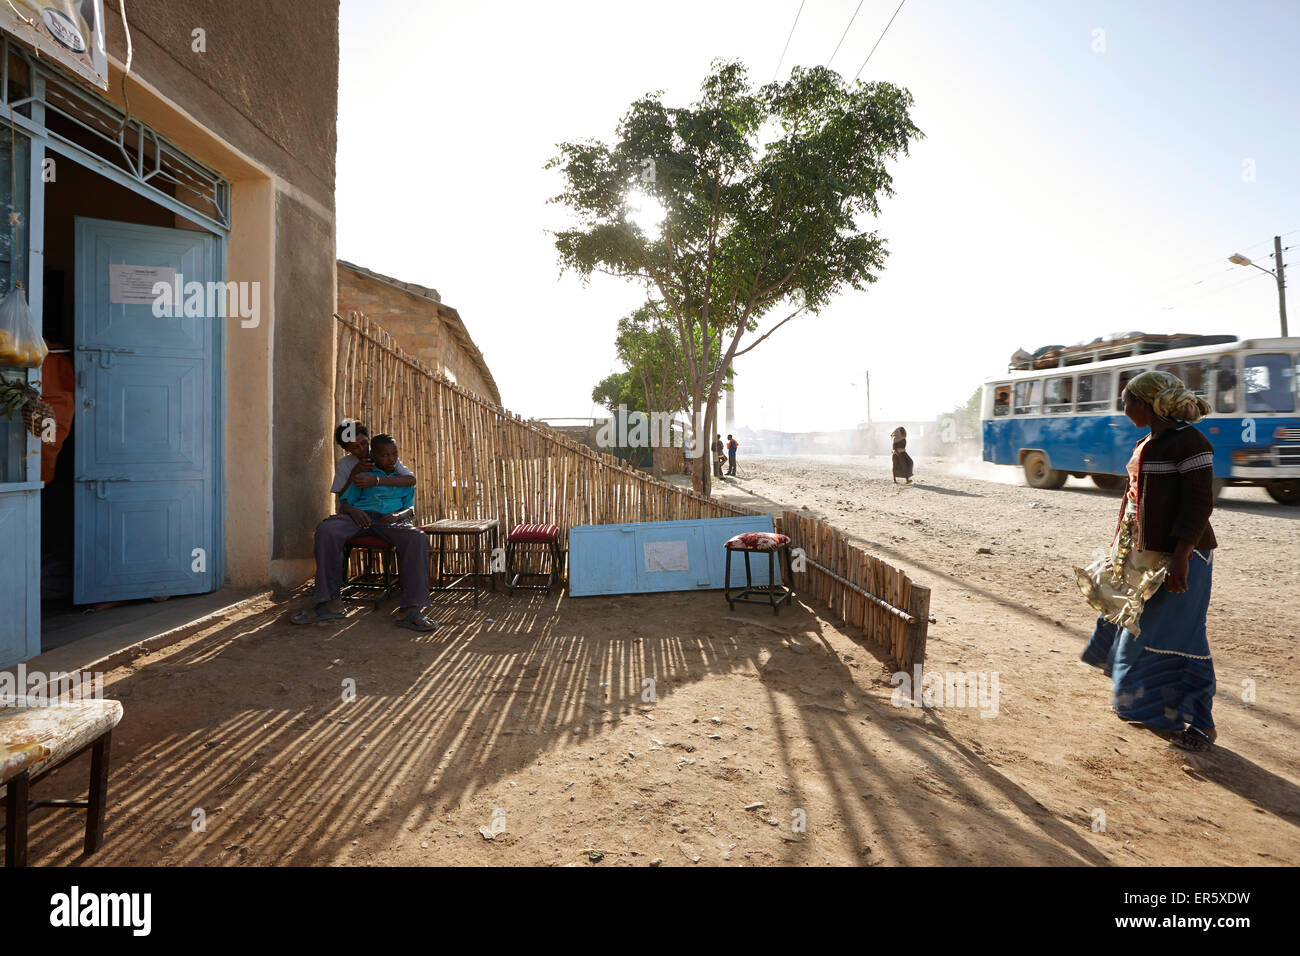 Terrace of a juice stand, Hawzien, Tigray Region, Ethiopia - Stock Image